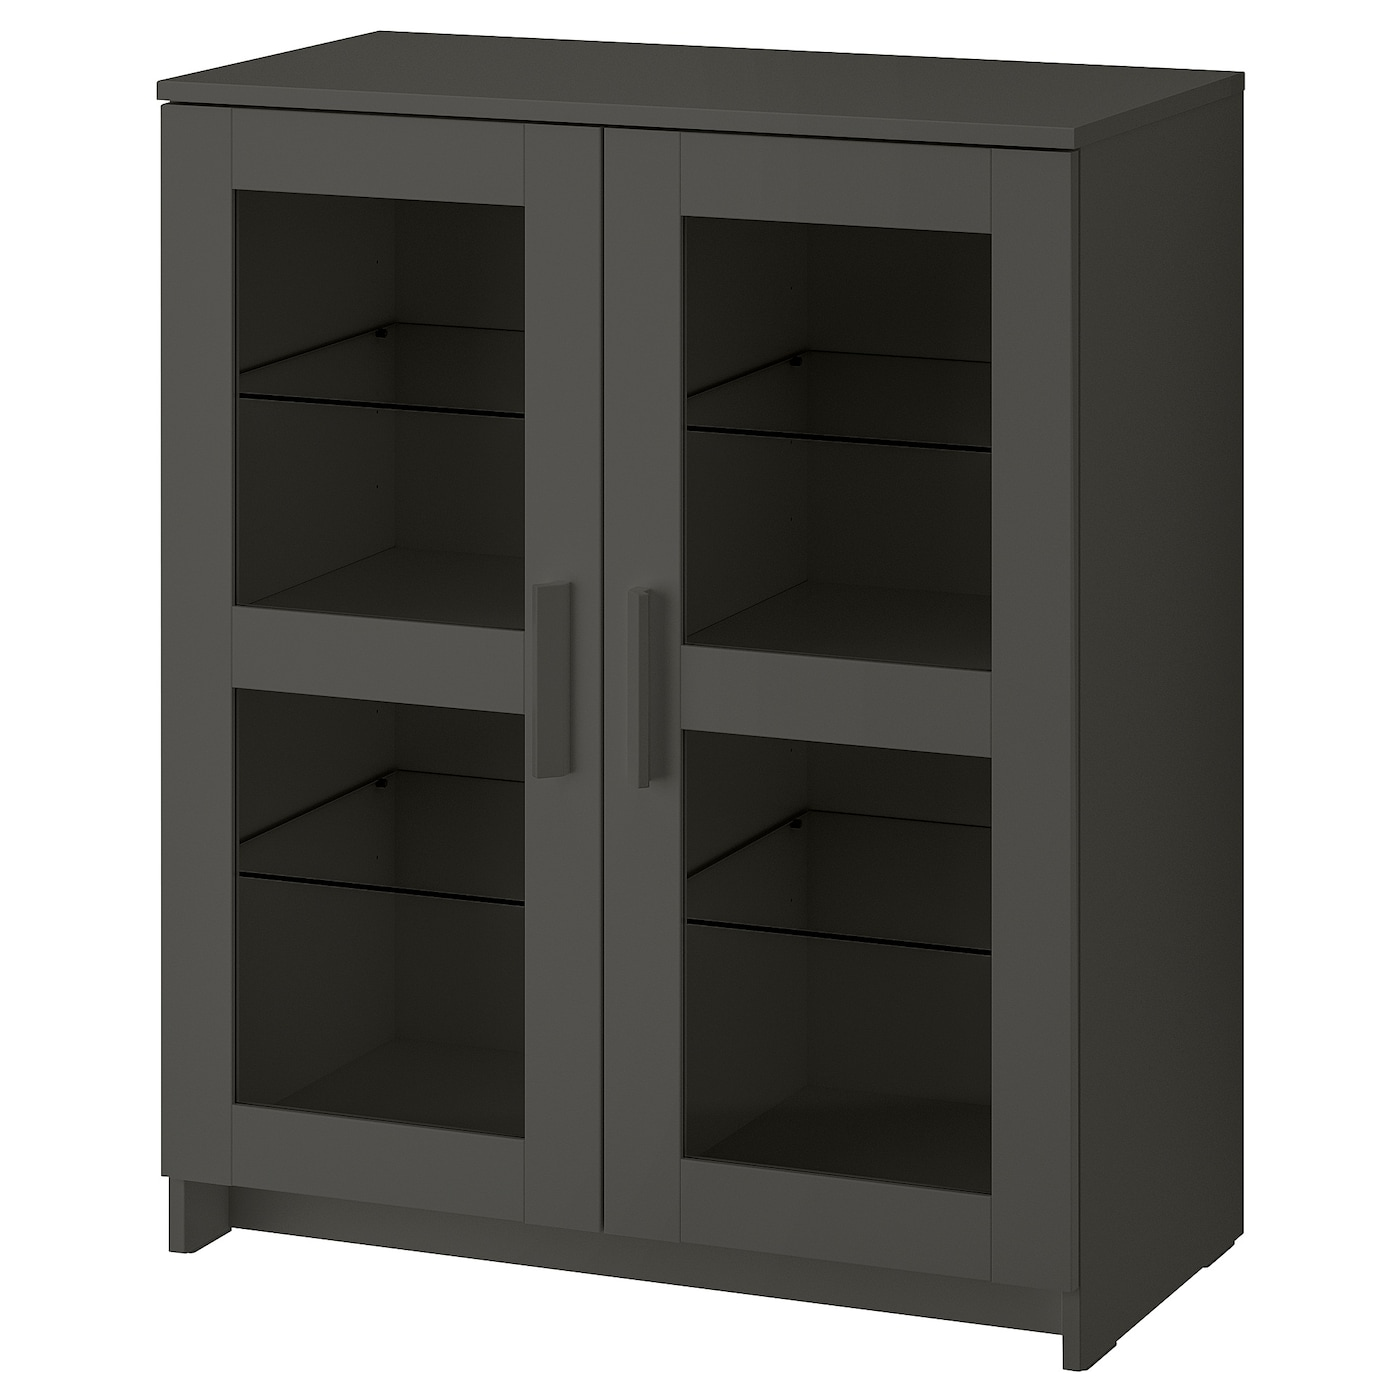 Brimnes Cabinet With Doors Glass Gray Ikea